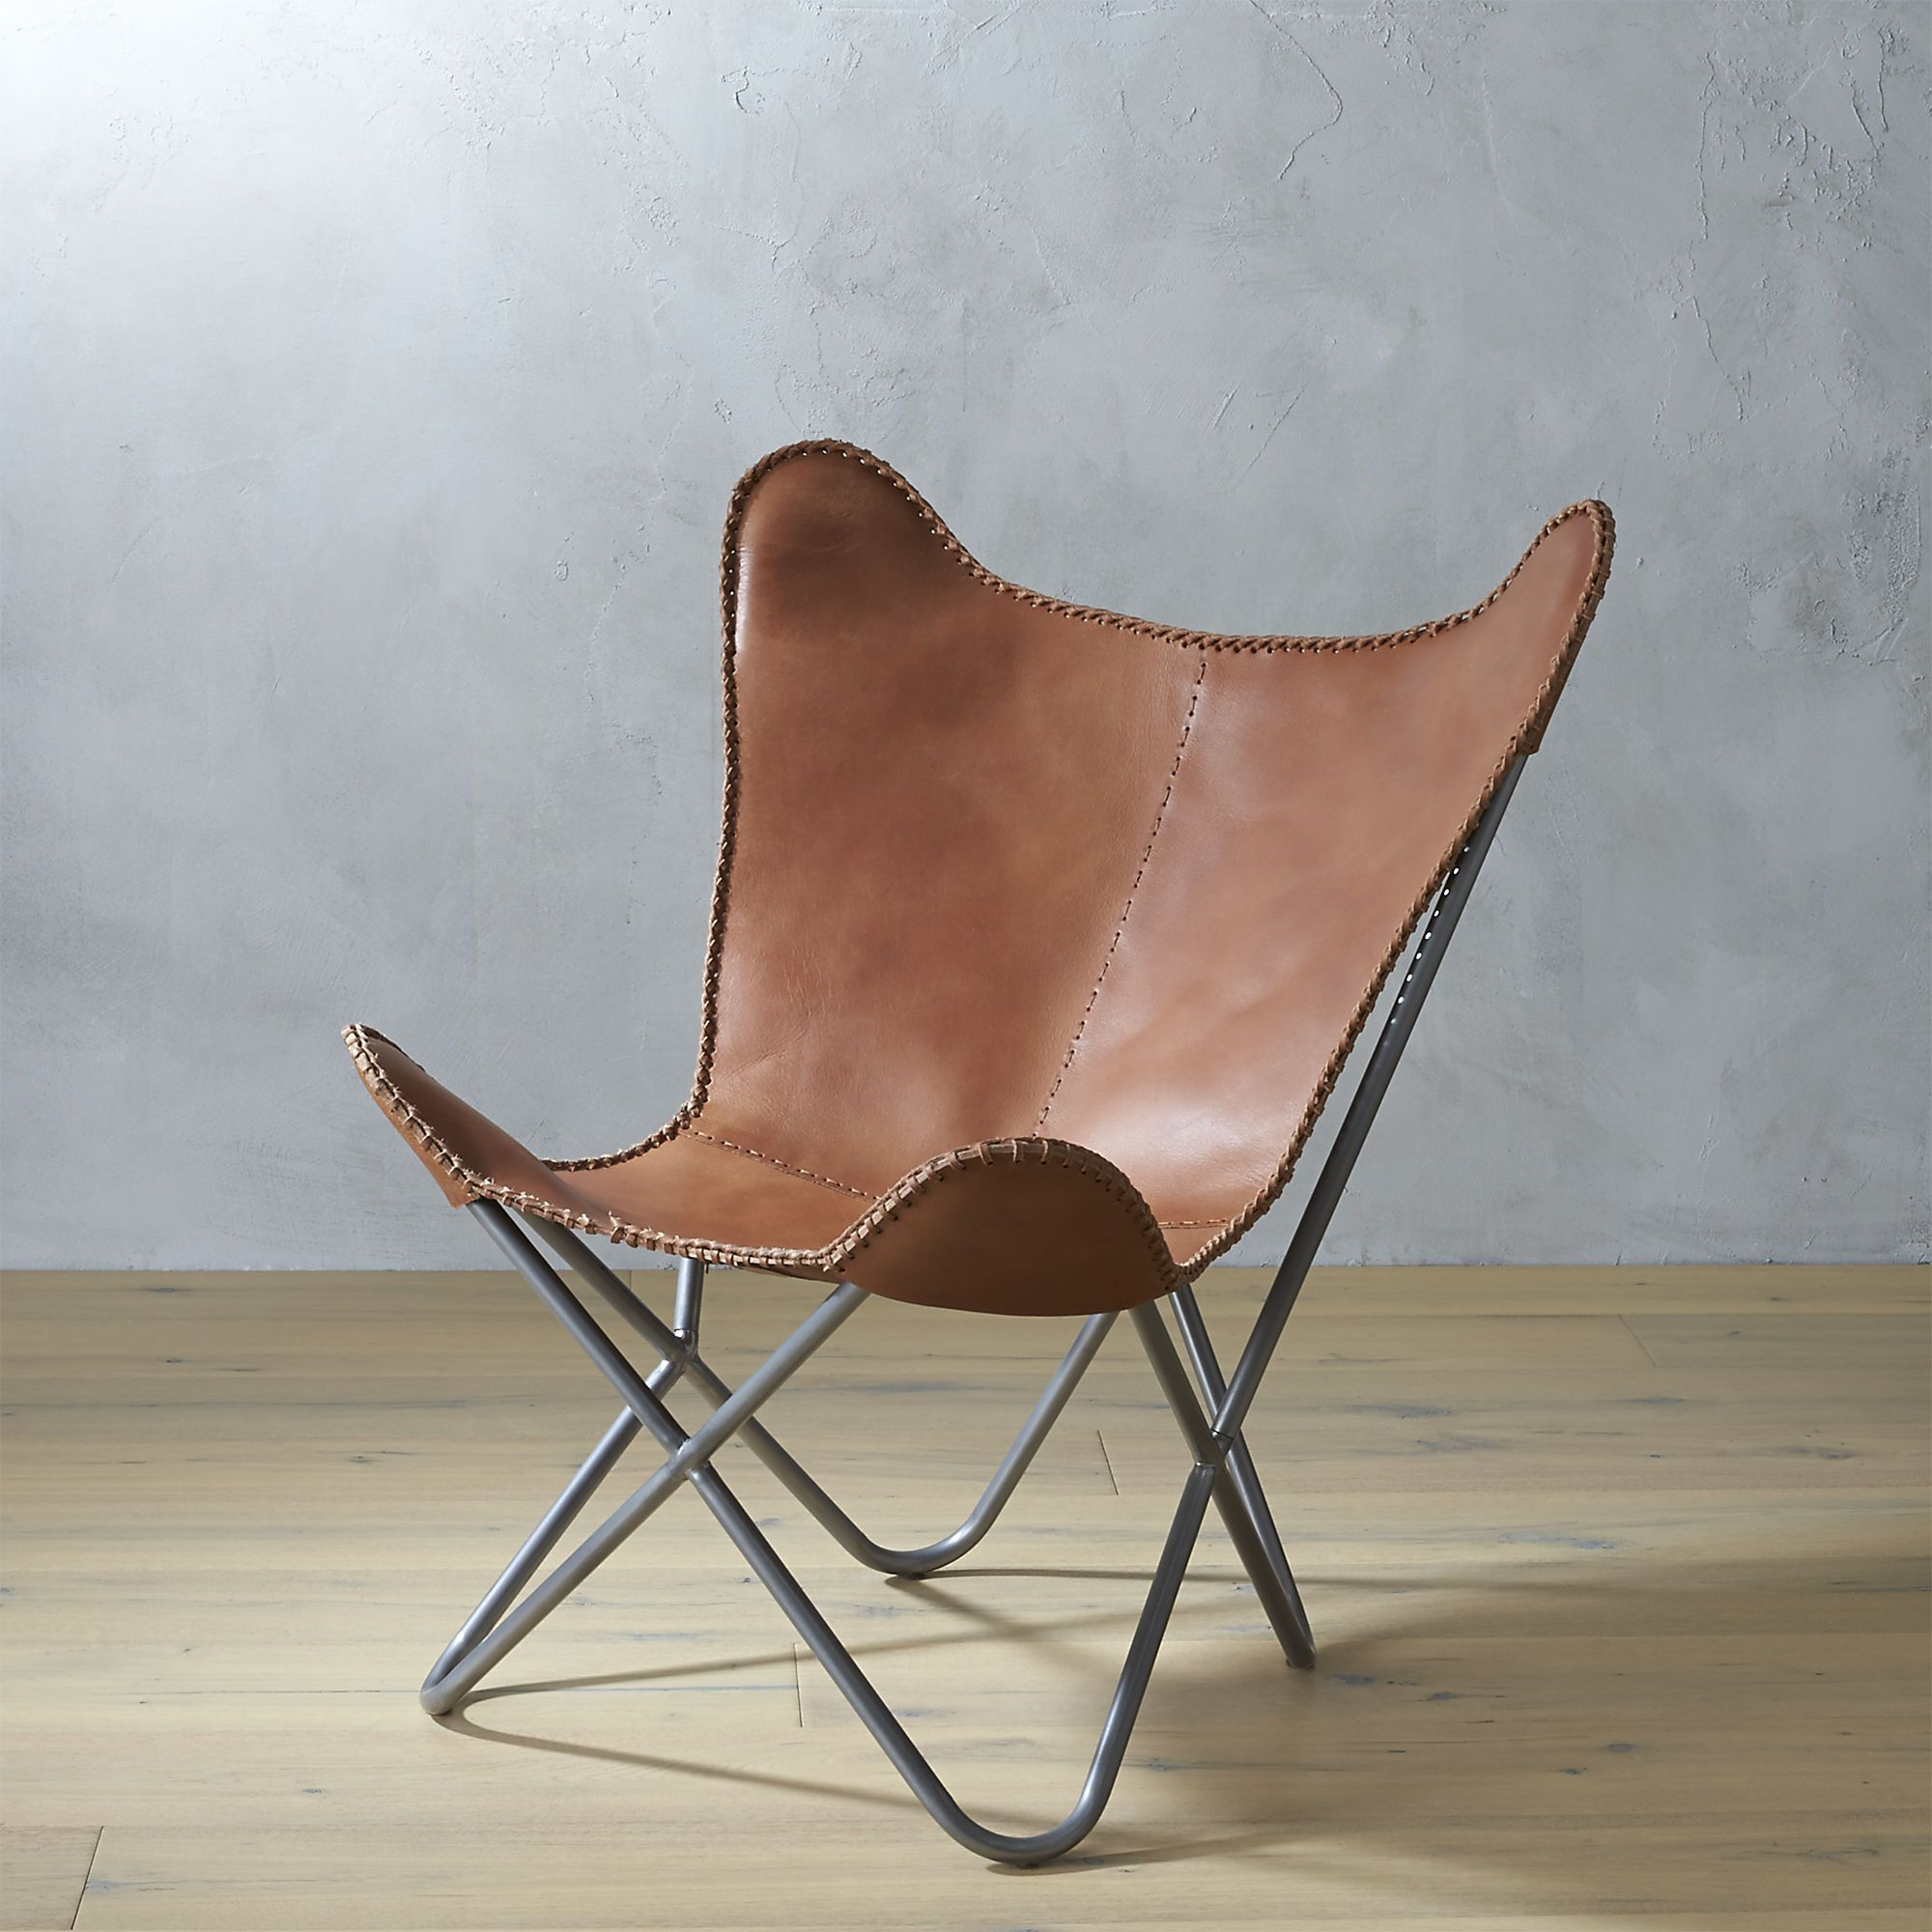 Belgrano tan suede butterfly chair butterfly chair